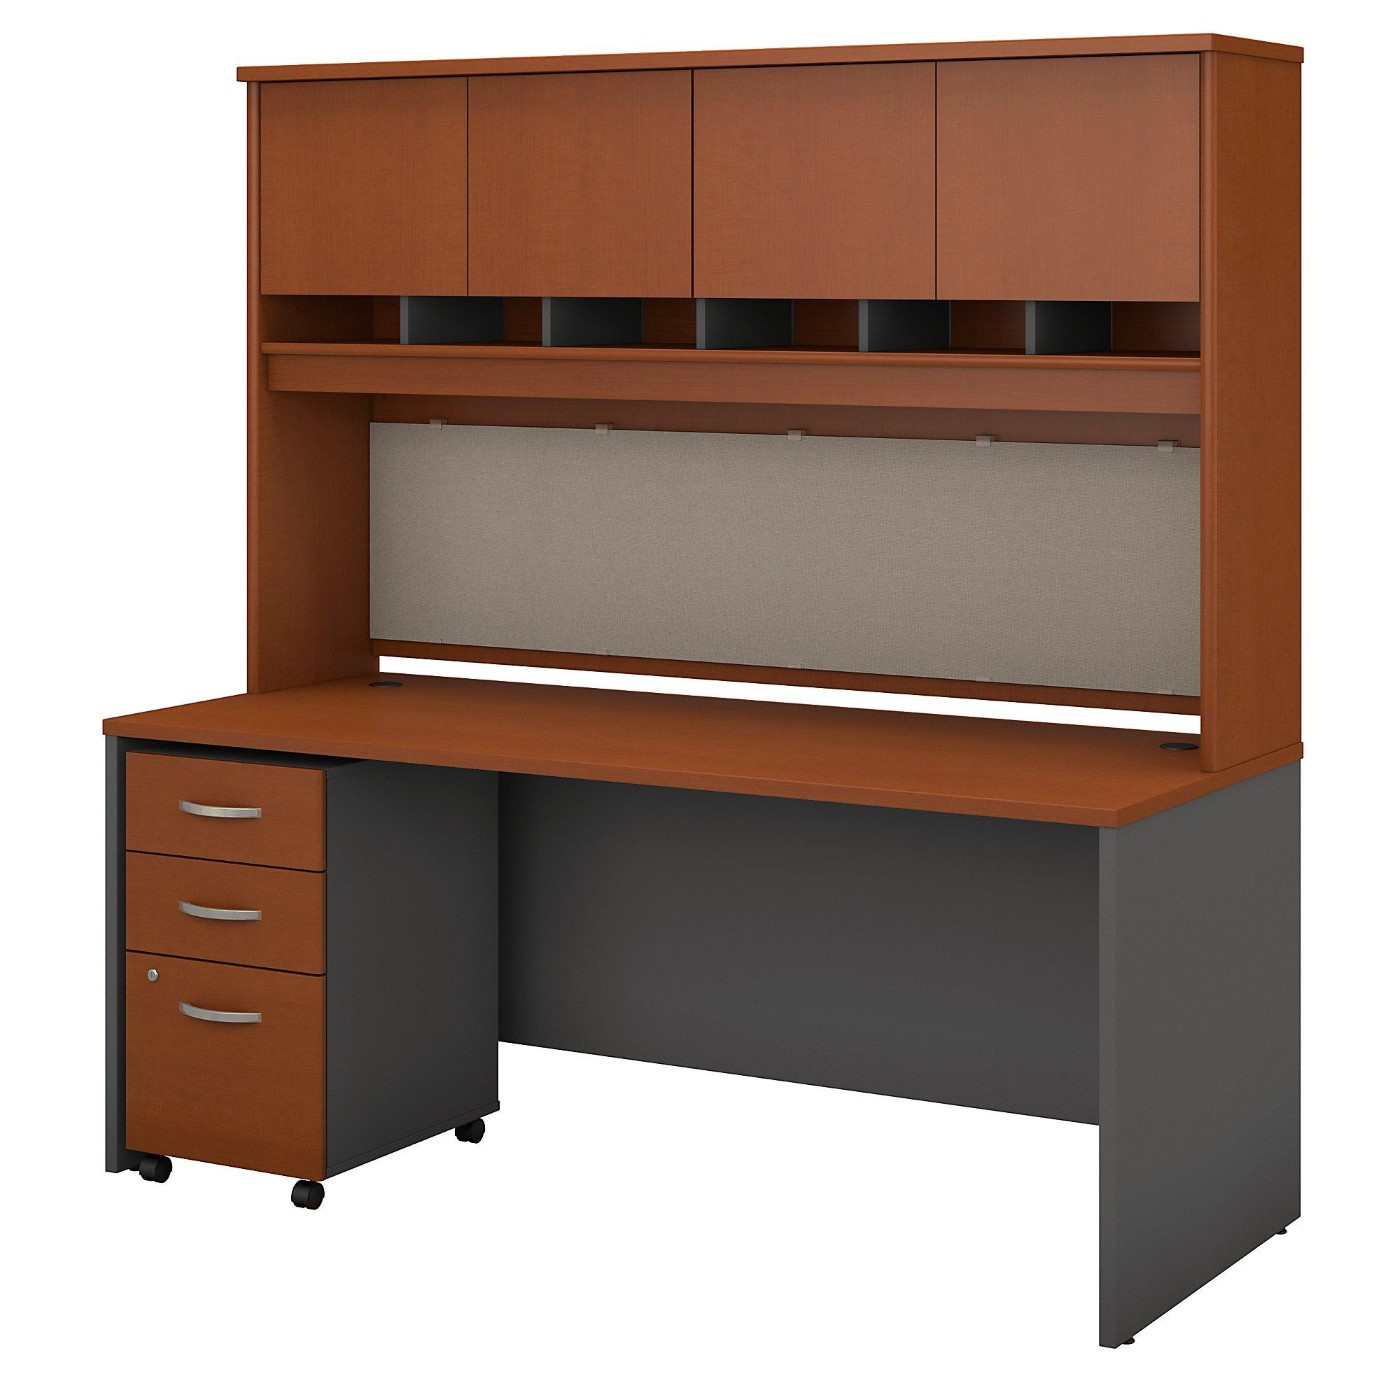 BUSH BUSINESS FURNITURE SERIES C 72W X 30D OFFICE DESK WITH HUTCH AND MOBILE FILE CABINET. FREE SHIPPING  VIDEO BELOW.  SALE DEDUCT 10% MORE ENTER '10percent' IN COUPON CODE BOX WHILE CHECKING OUT.